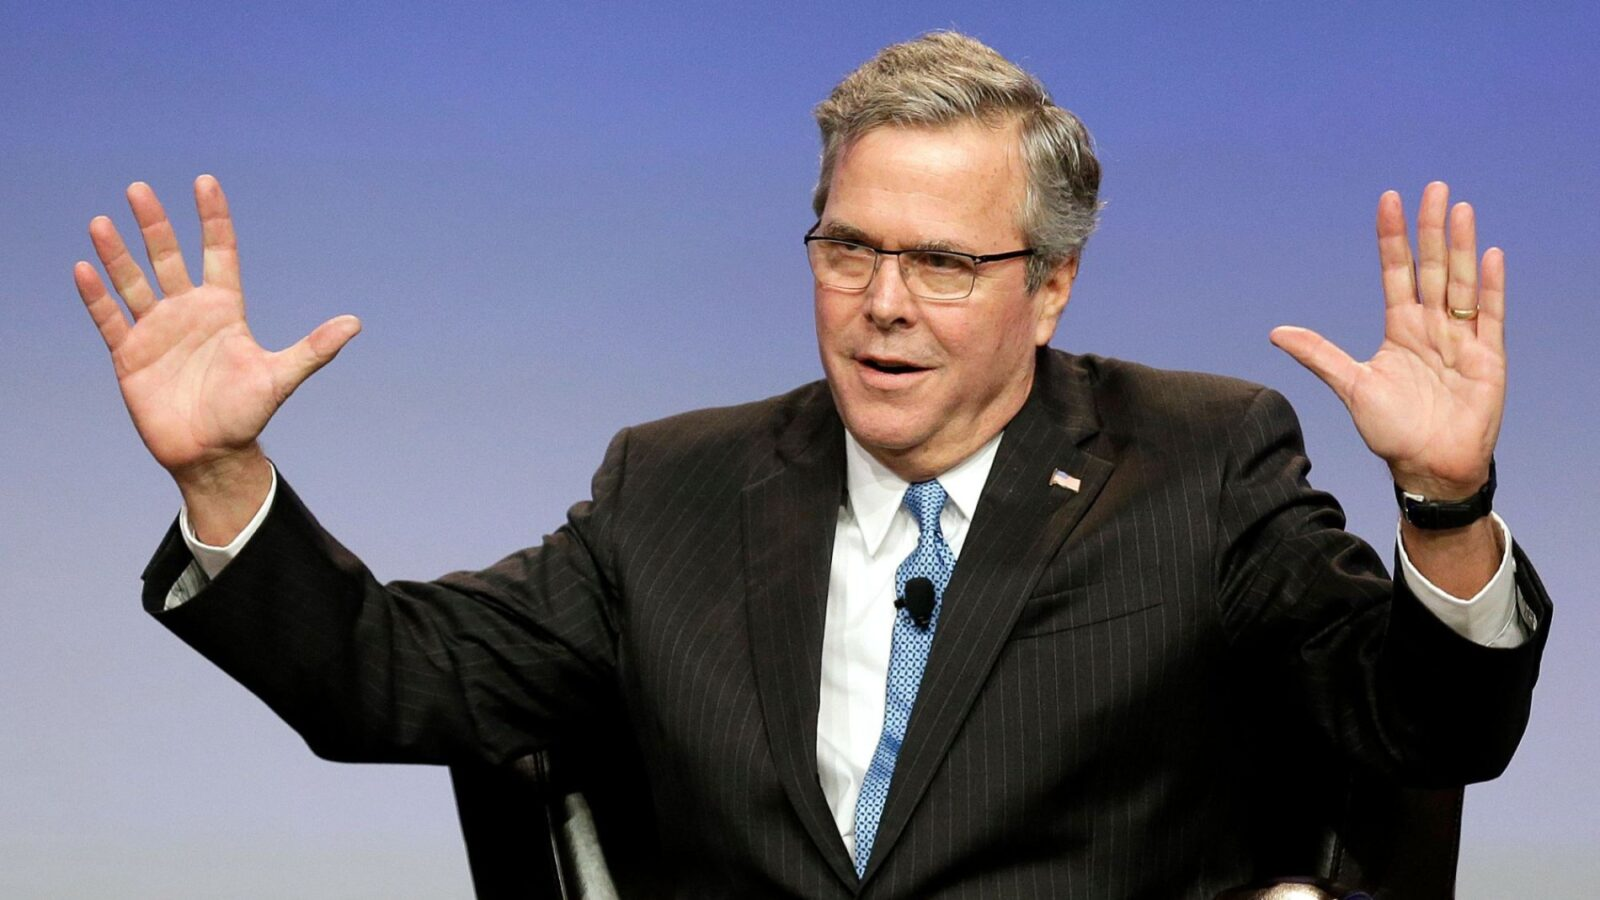 Looks Like A Bush: Jeb! Is In